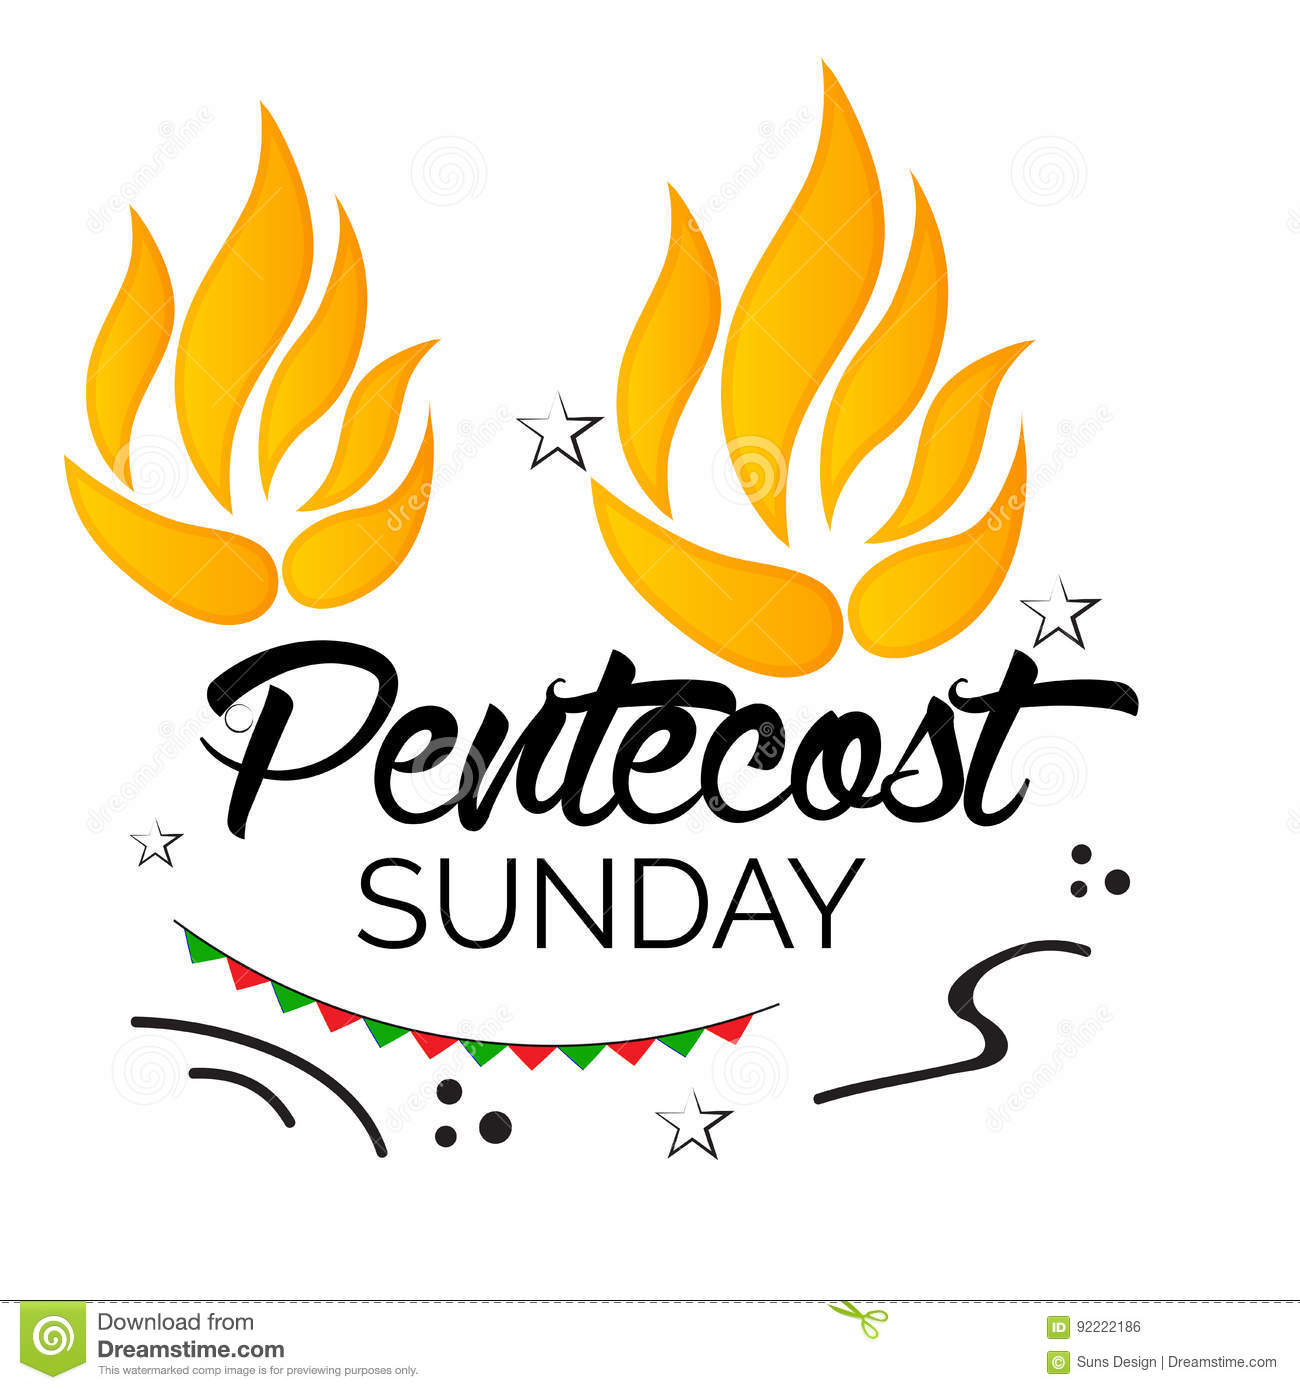 Pentecost sunday clipart 4 » Clipart Station.